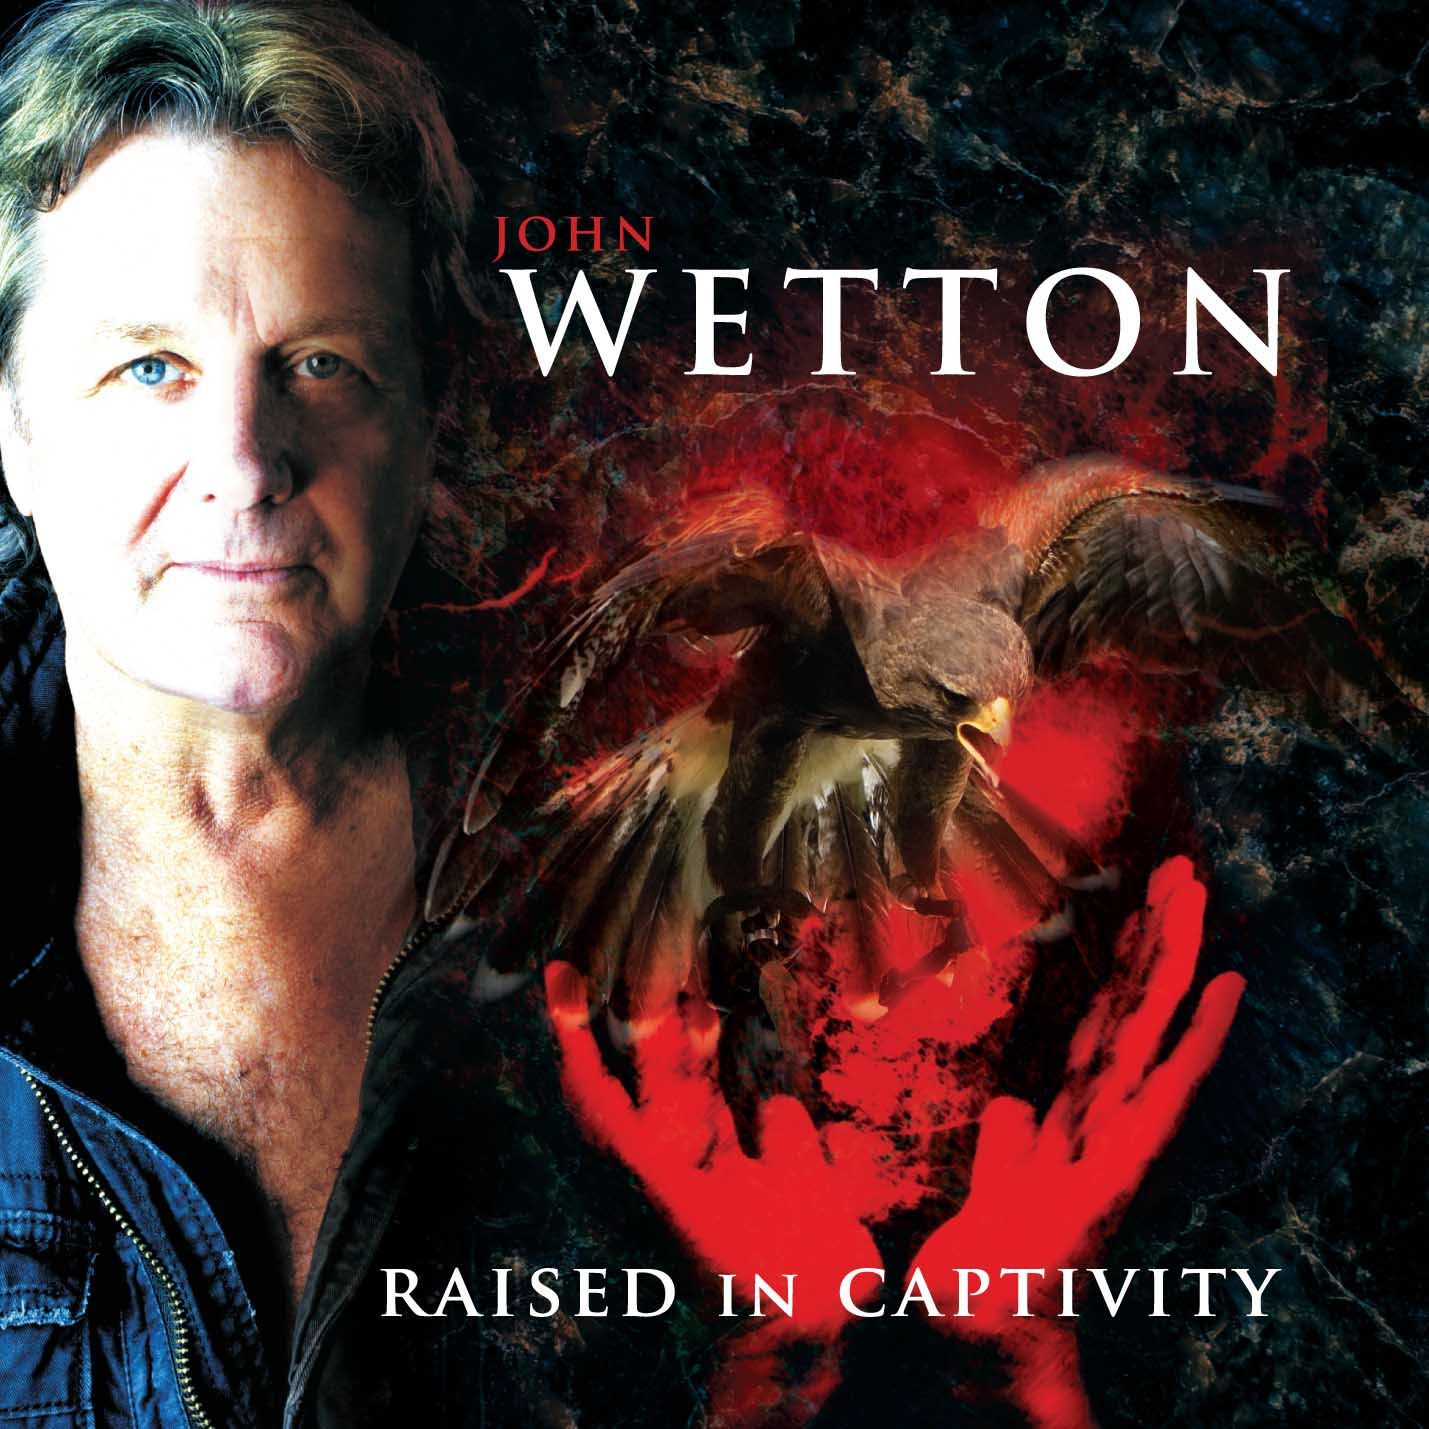 john wetton raised in captivity